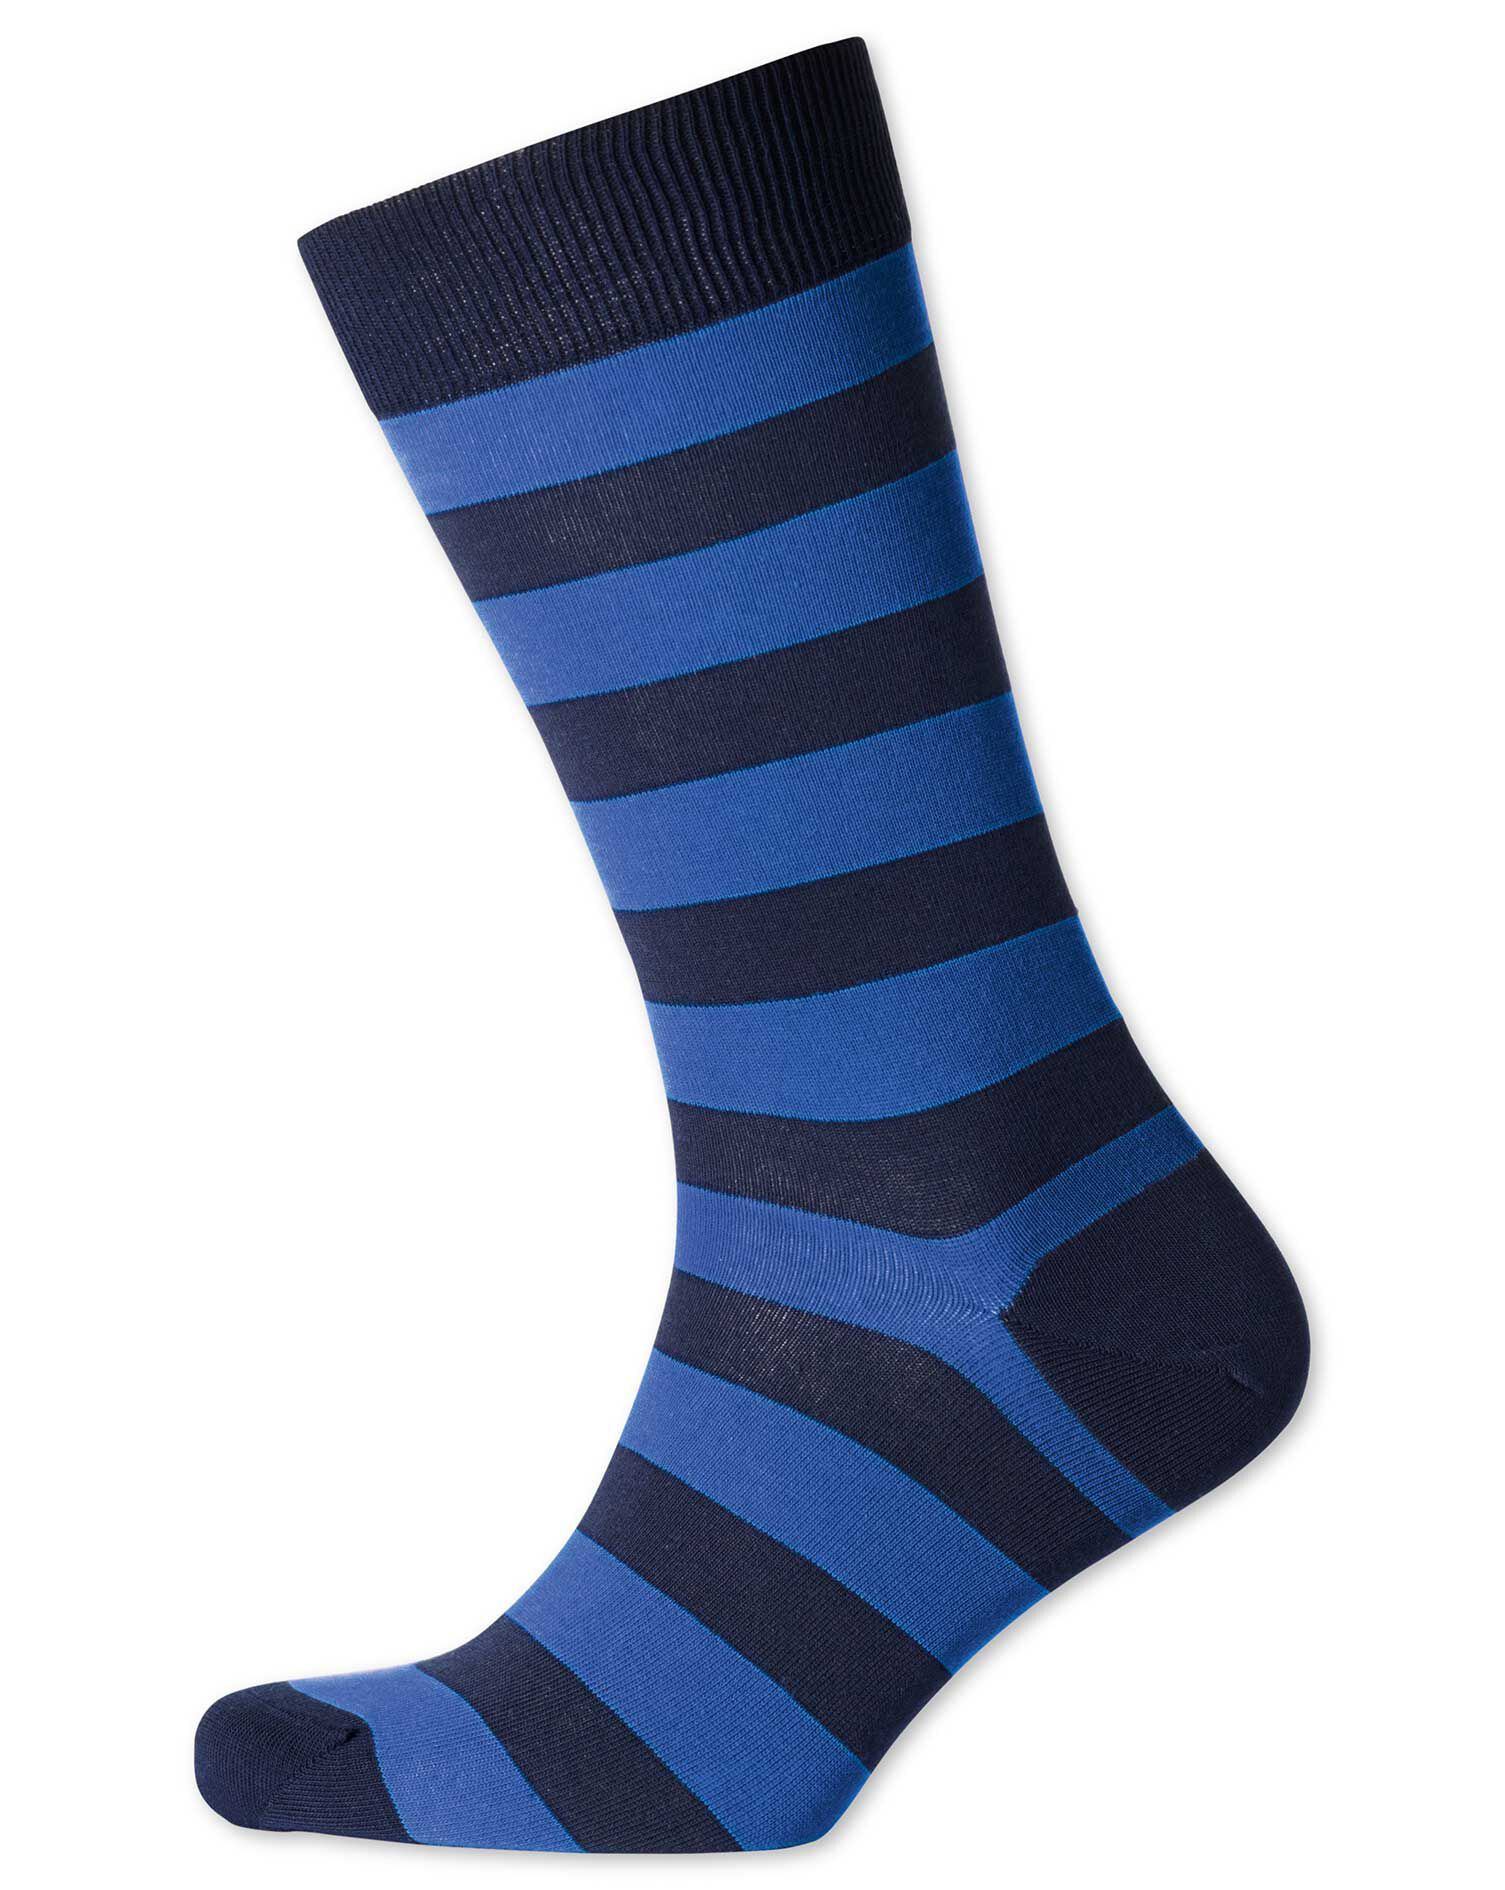 Navy and Royal Wide Stripe Socks Size Medium by Charles Tyrwhitt